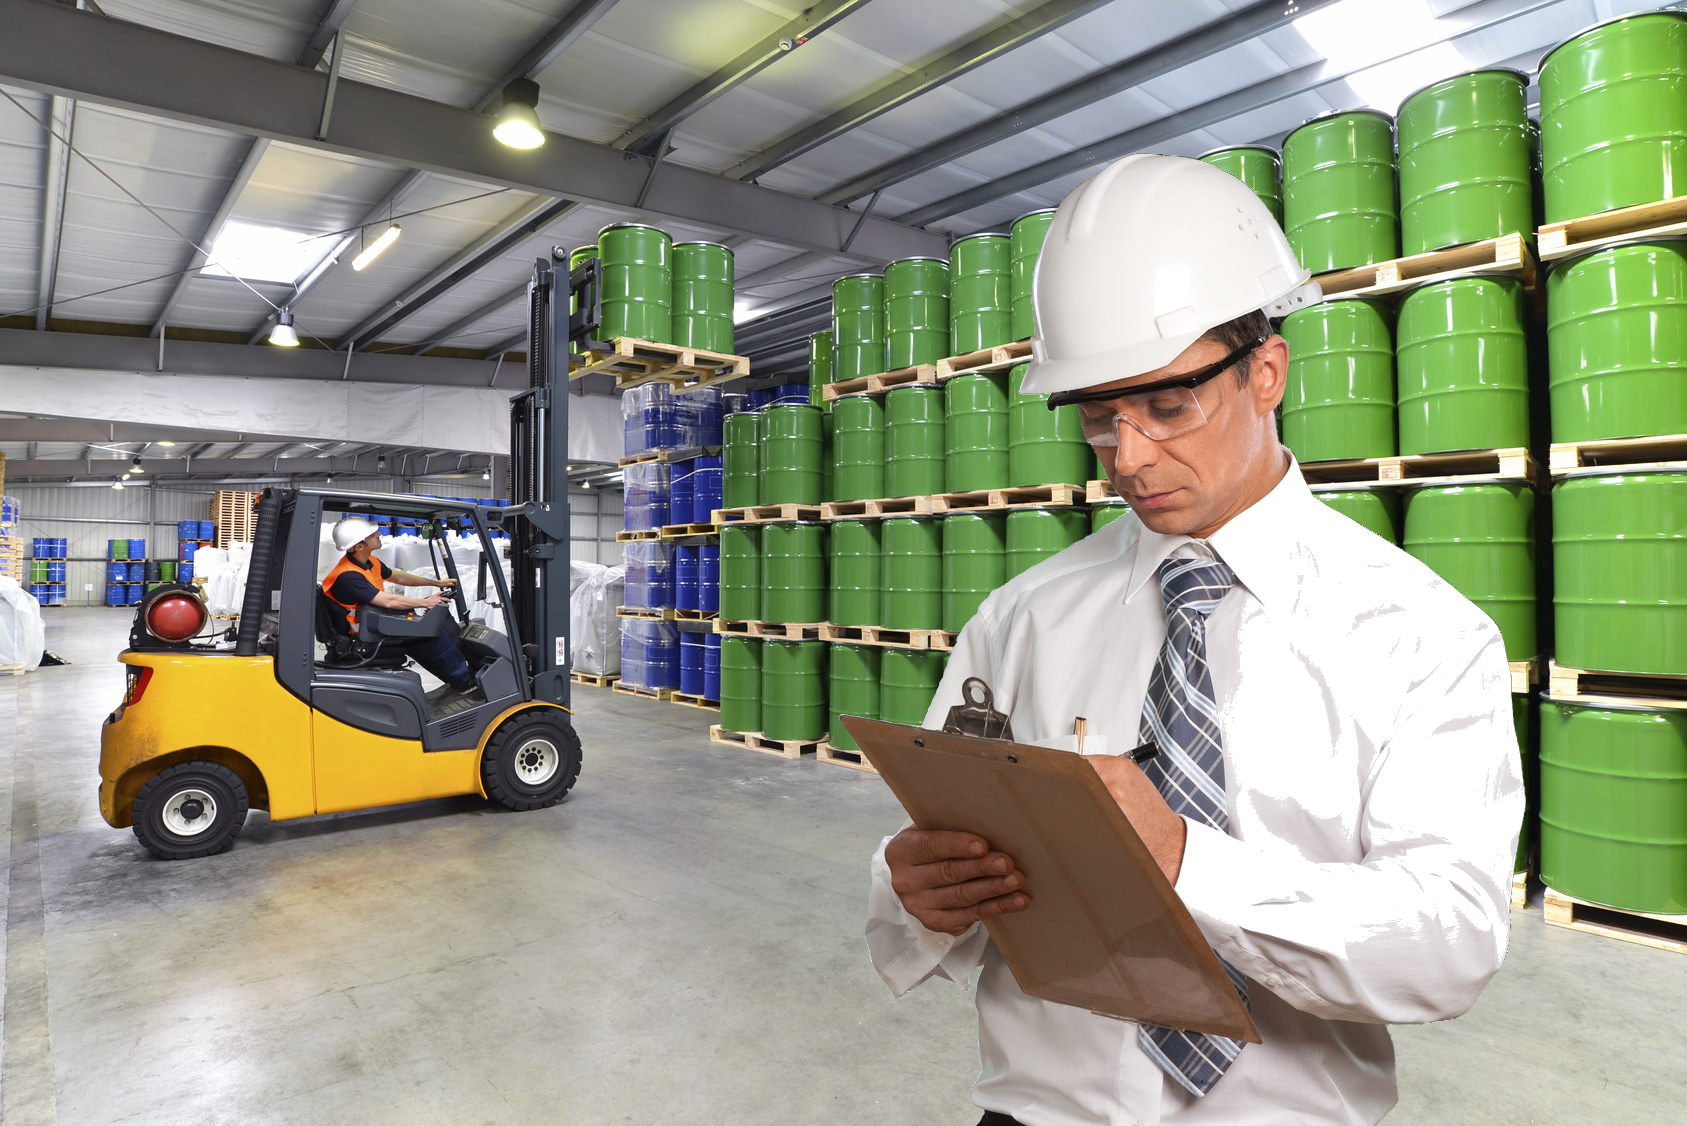 Forklift training archives first quality forklift training osha forklift trainer writing xflitez Choice Image